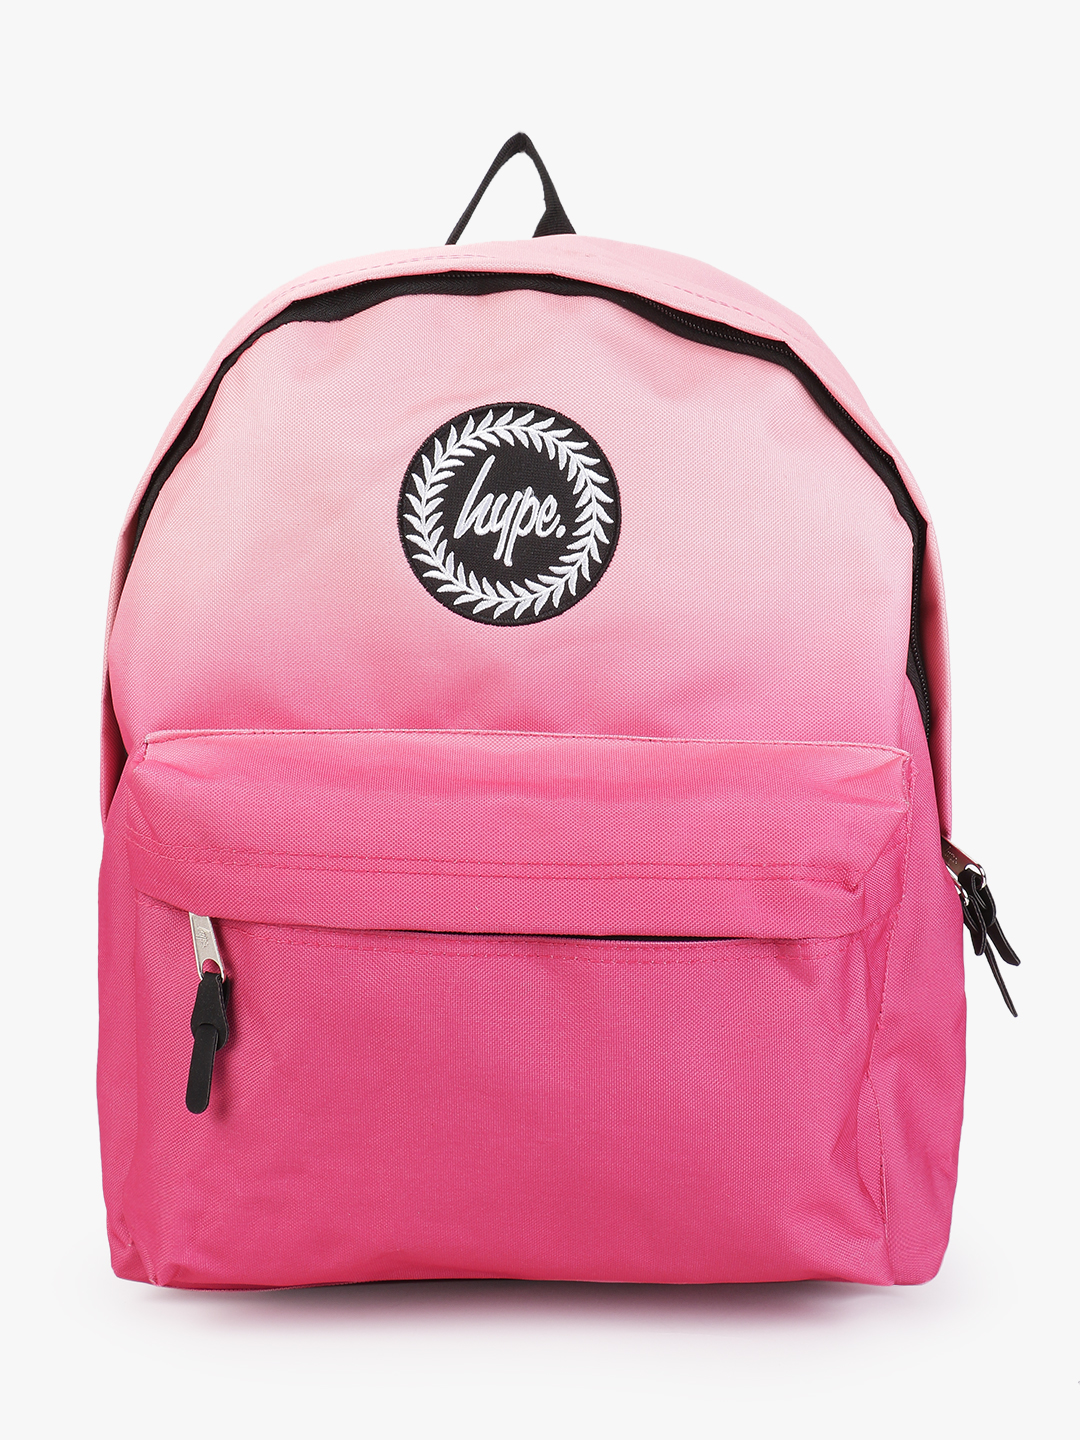 Hype Pink Ombre Backpack 1